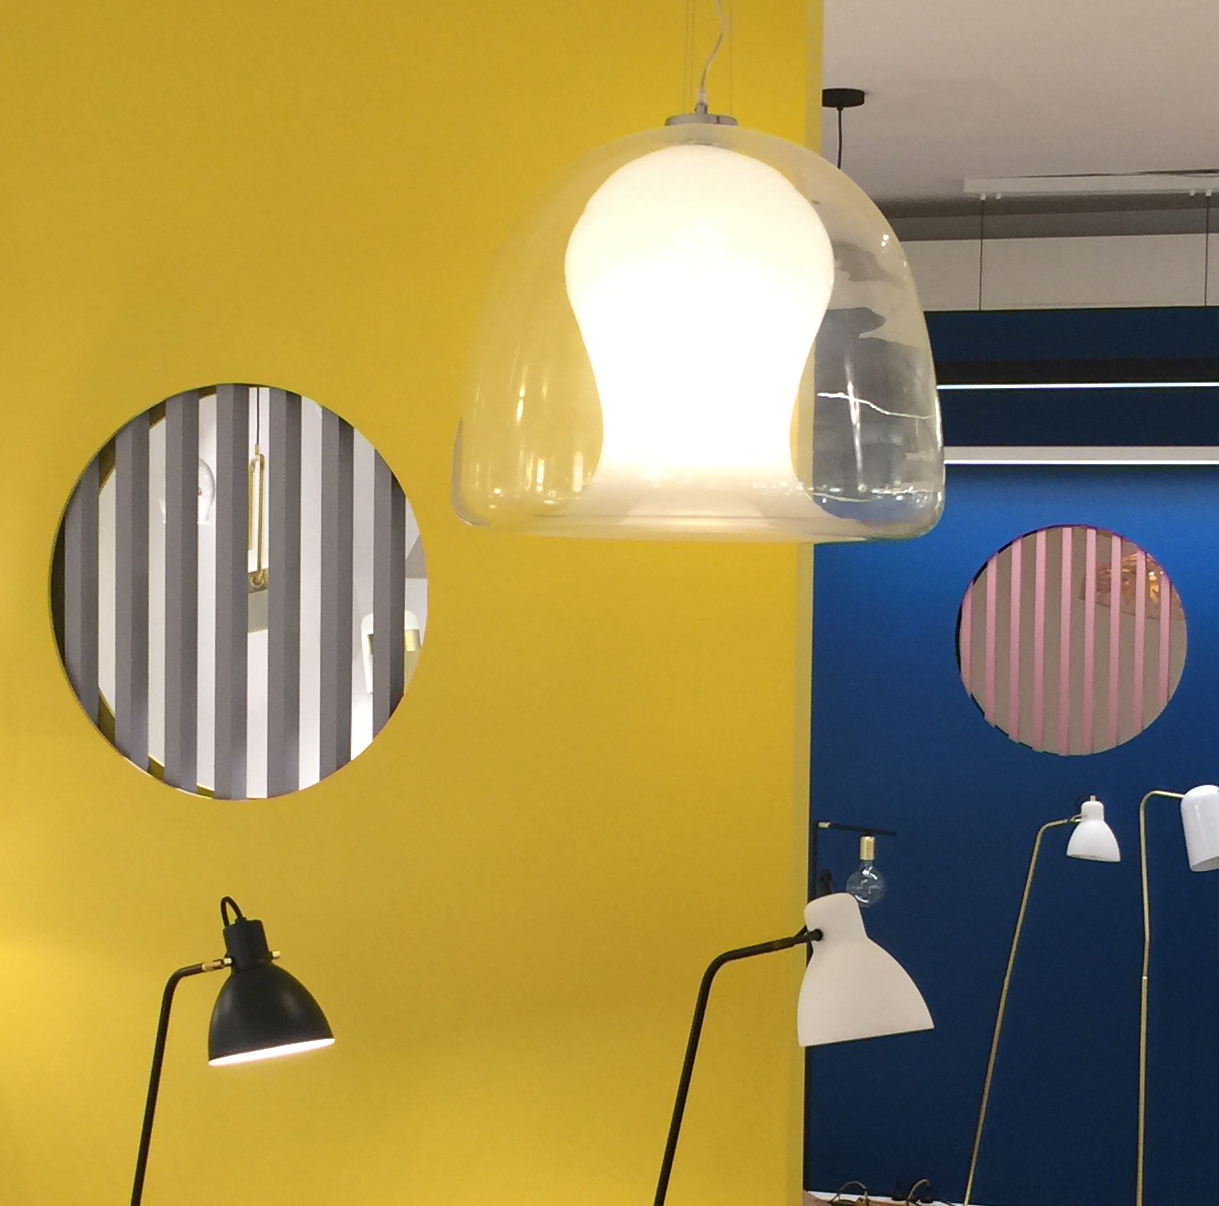 fit-out-website.jpg